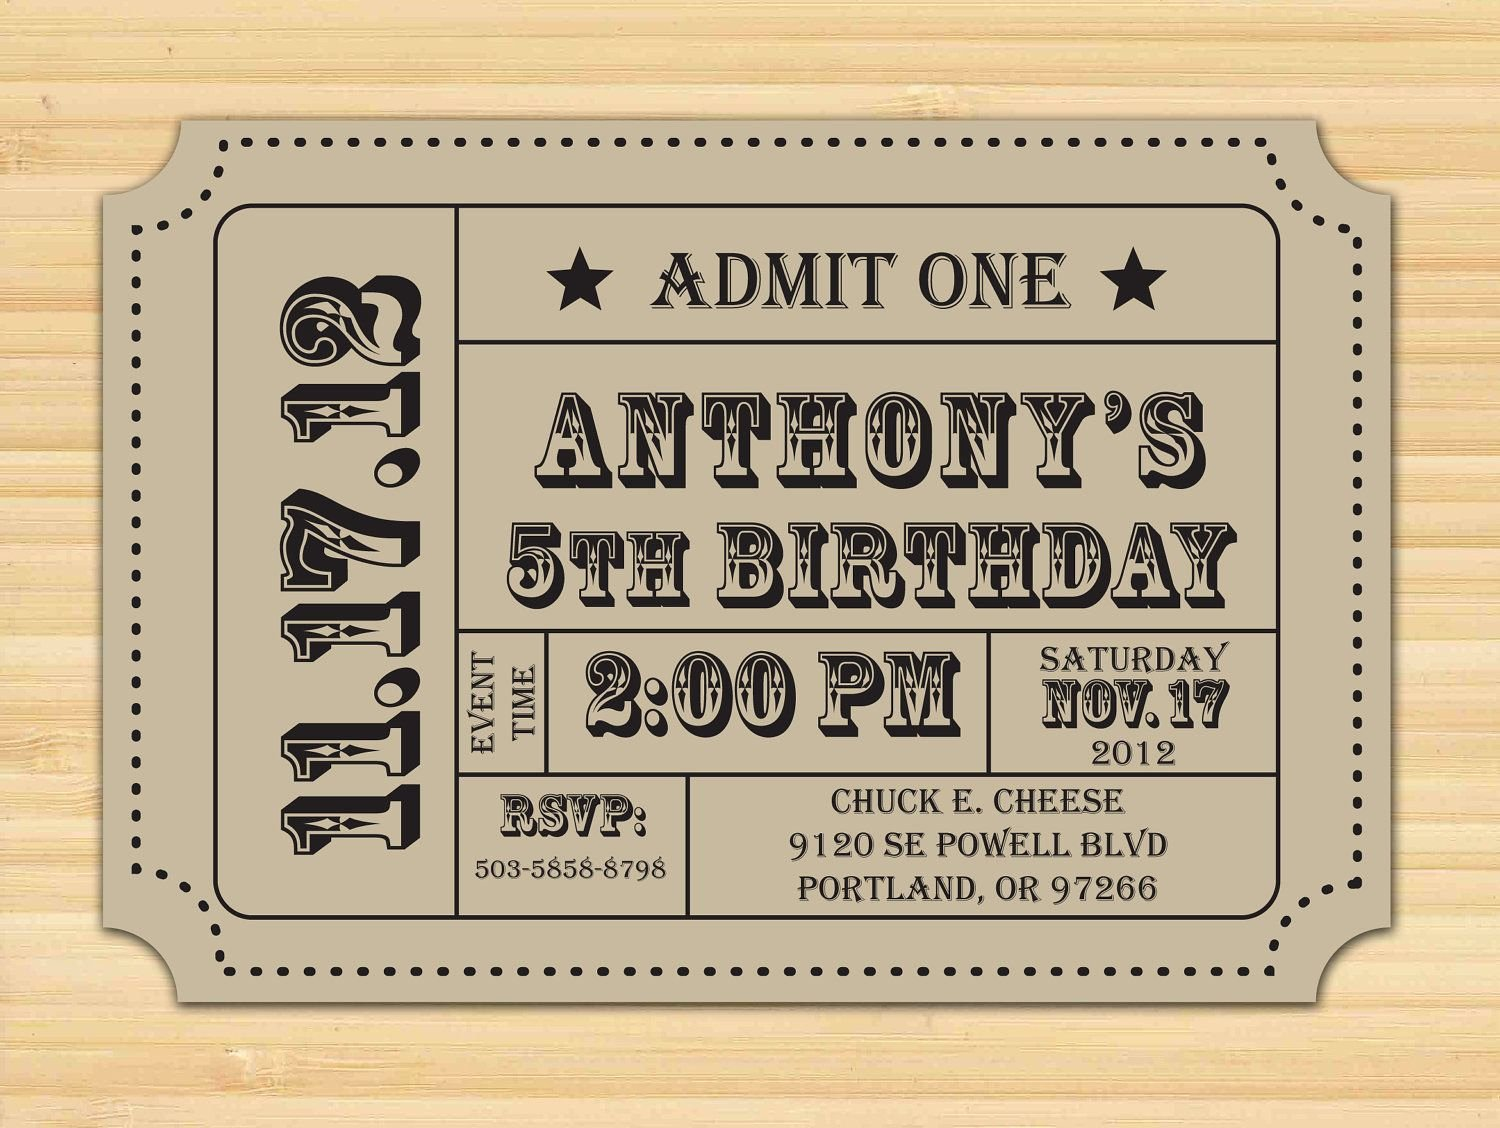 Carnival Ticket Invitation Ticket Stub Editable